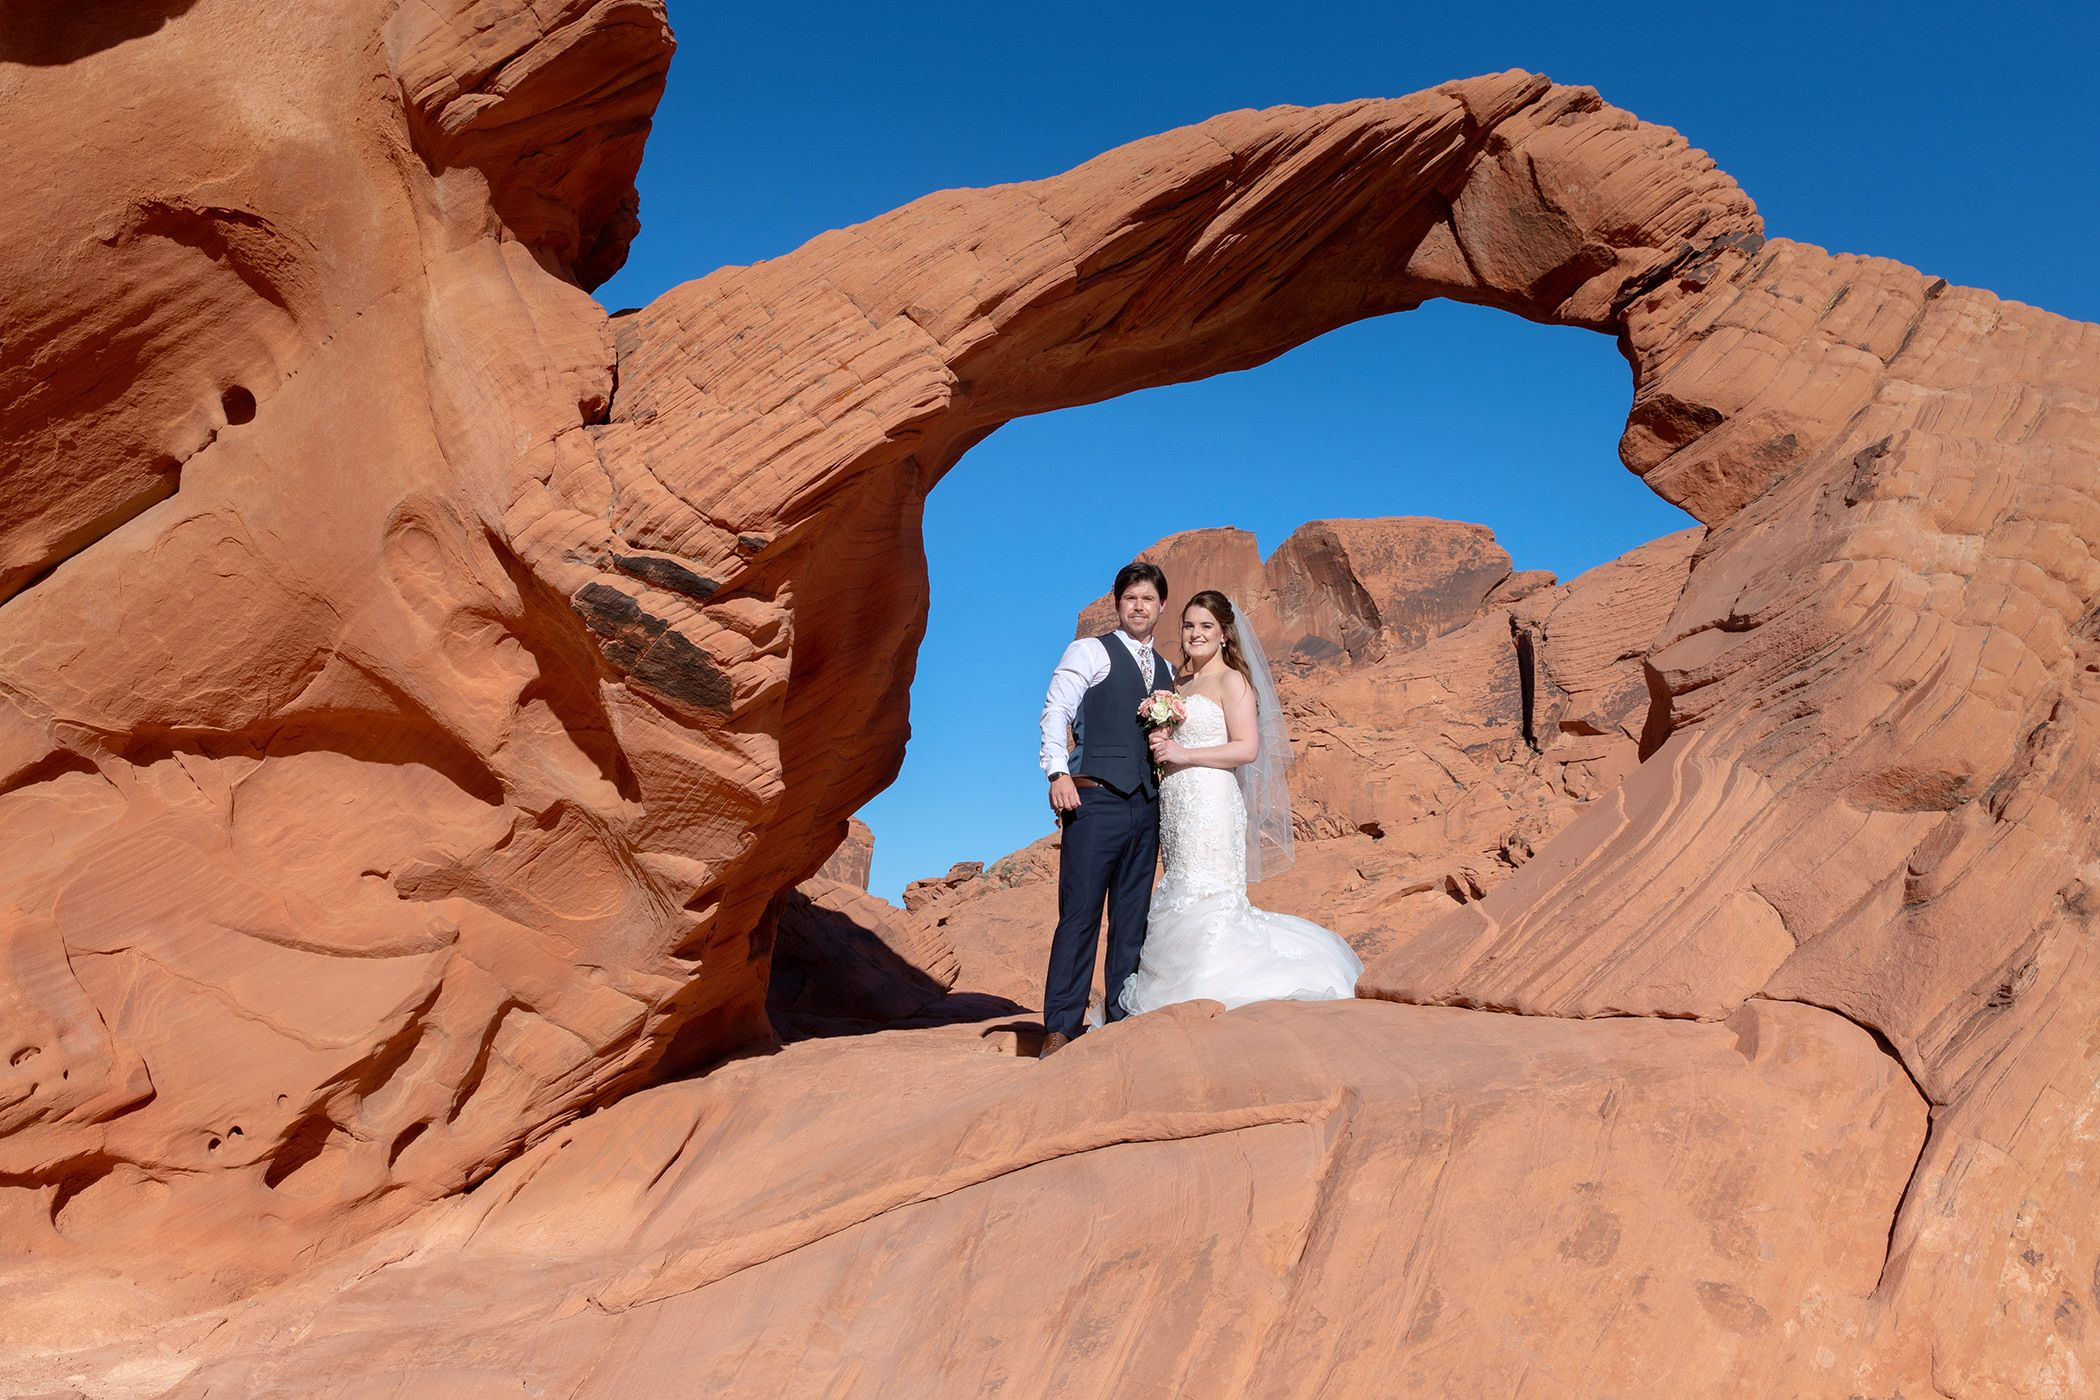 The Arch Rock in the Valley of fire